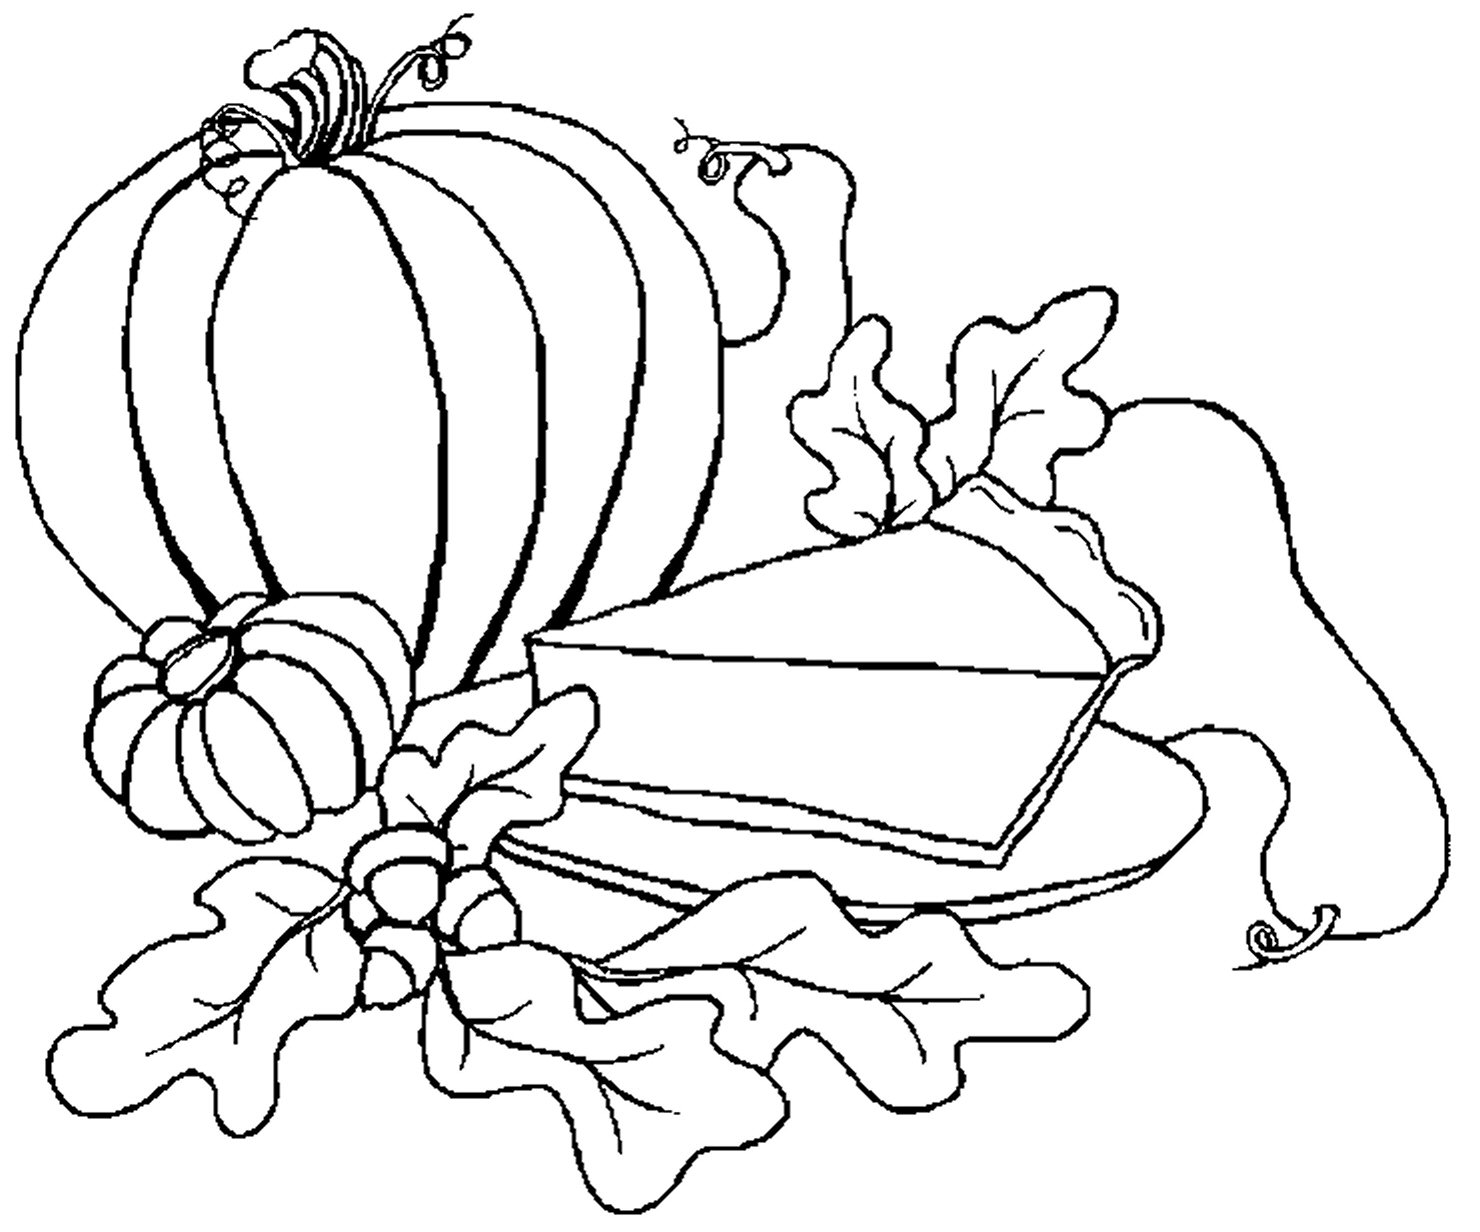 free printable pumpkin coloring pages for kids - Pages For Kids